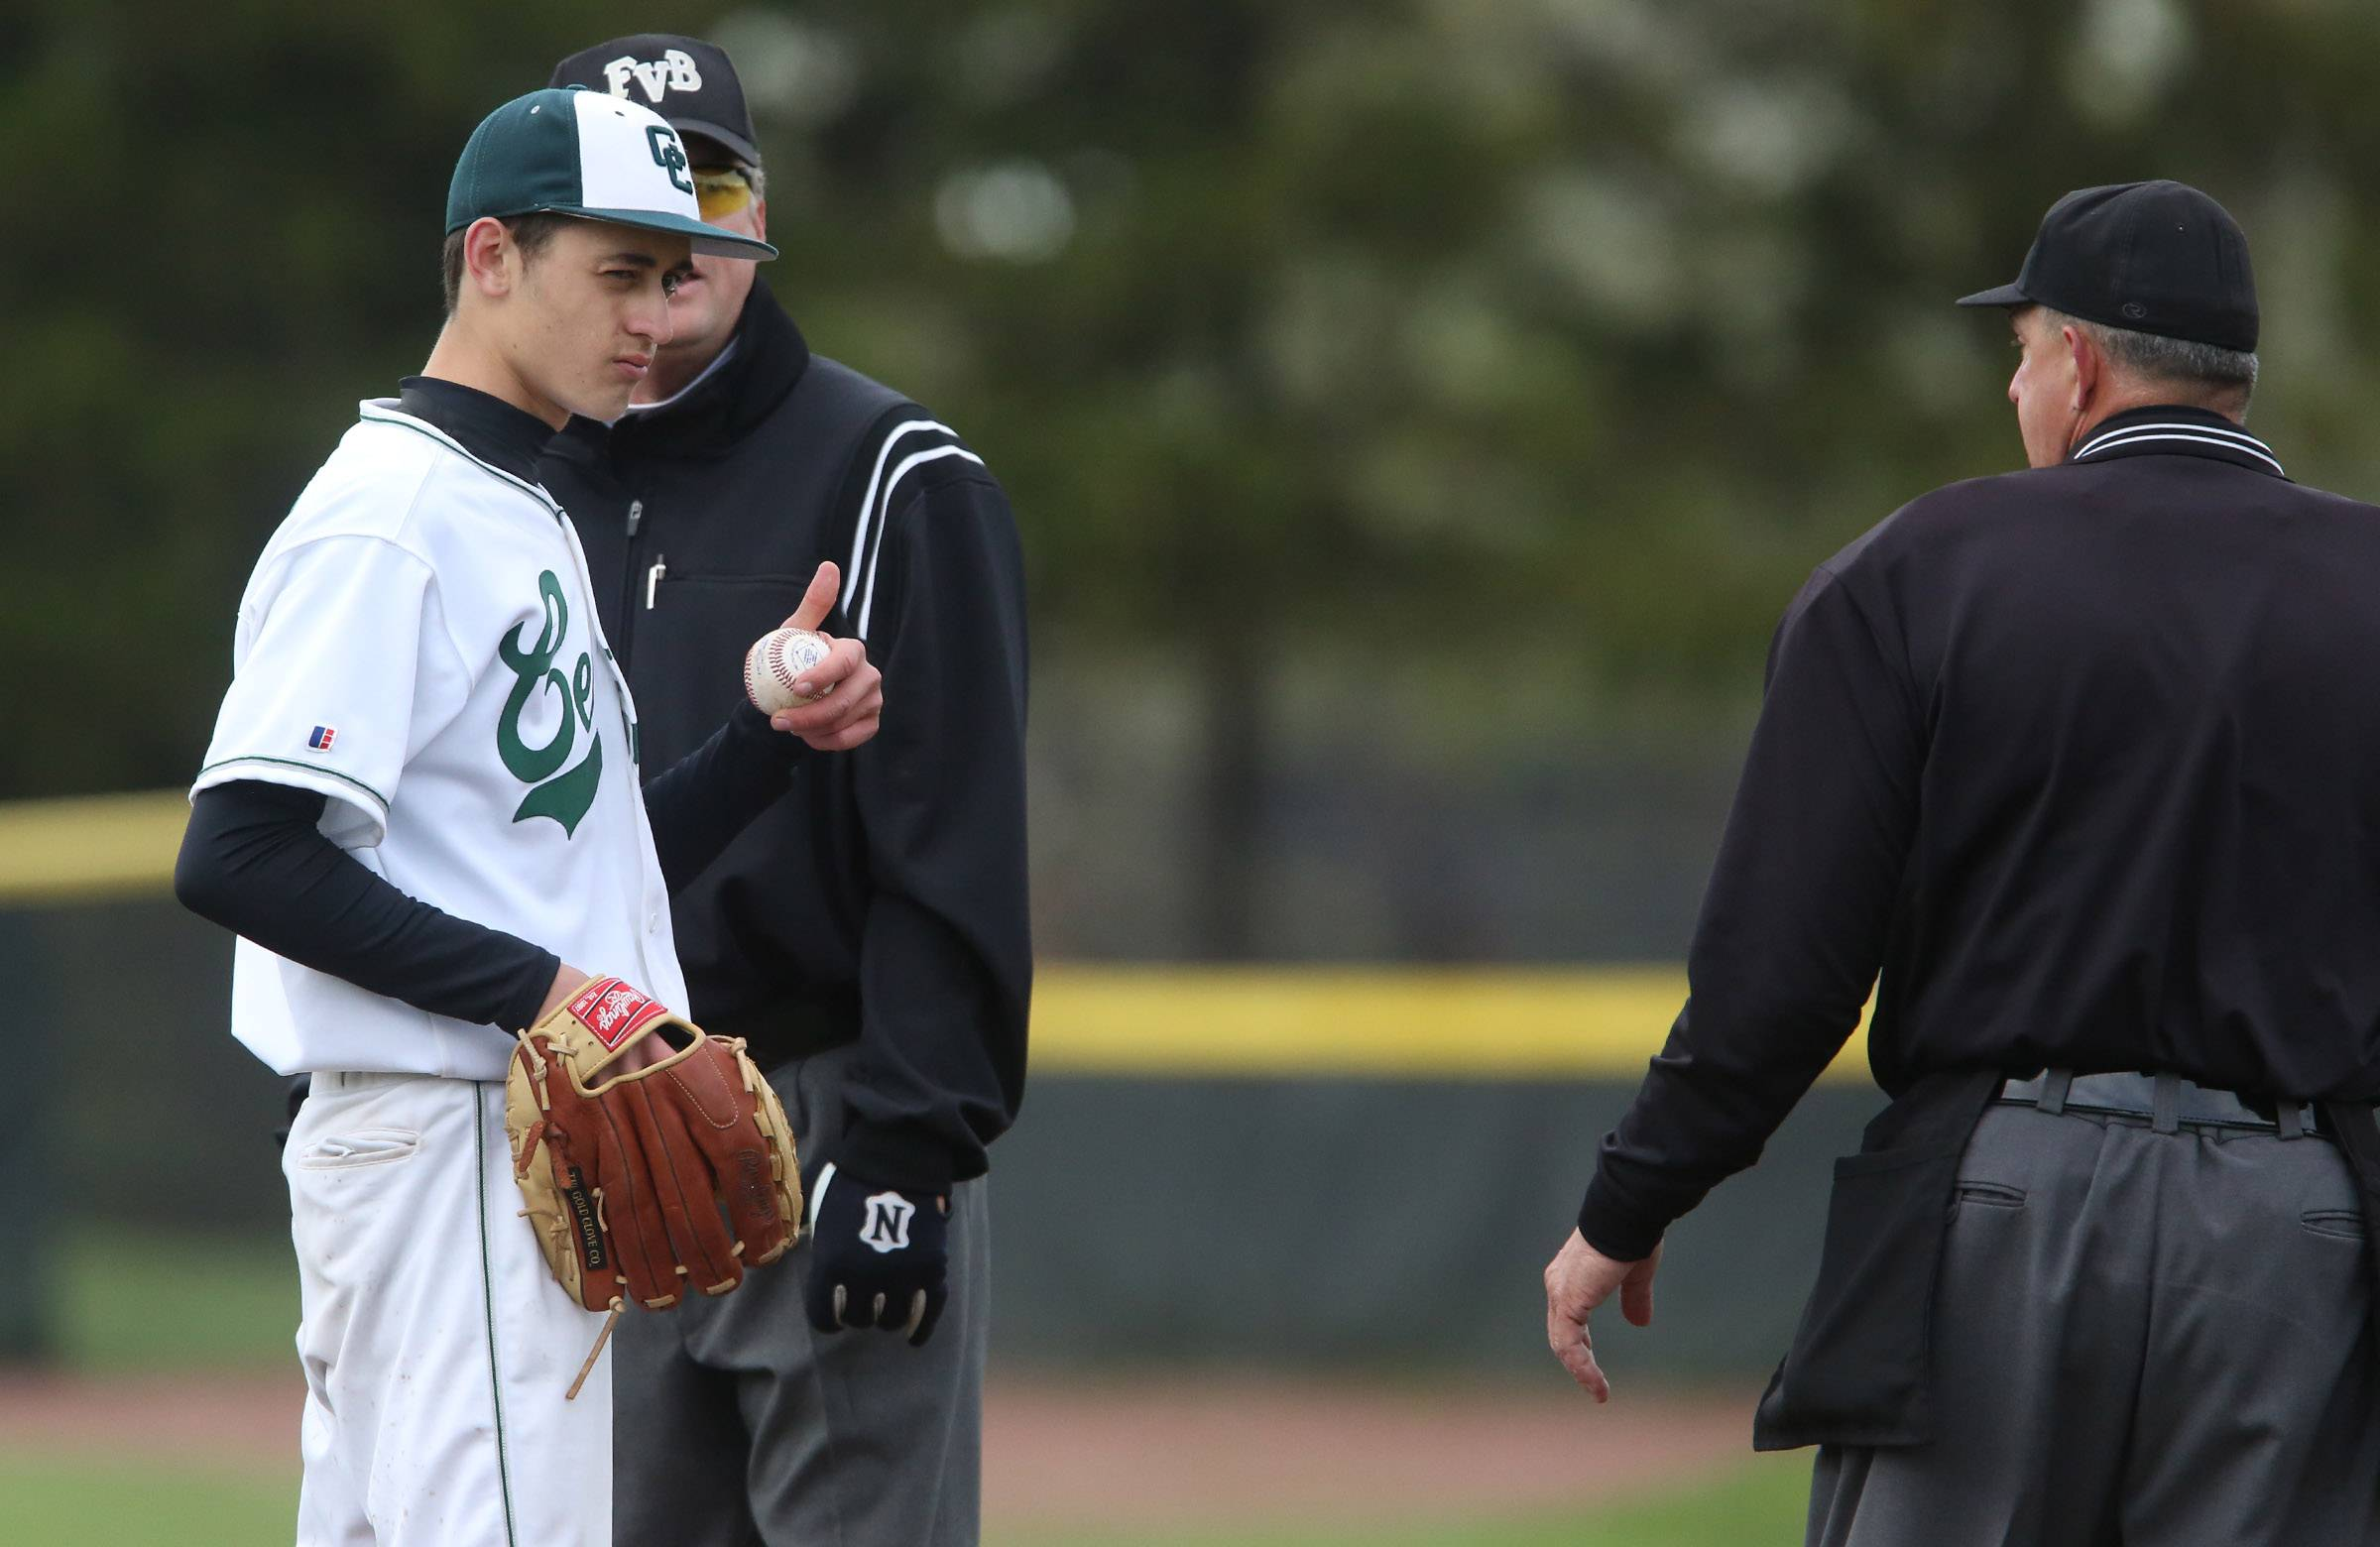 Grayslake Central pitcher Justin Guryn shows the umpire he has a bandage on his finger after the umpire checked his throwing fingers for an object, against Grayslake North on Friday.